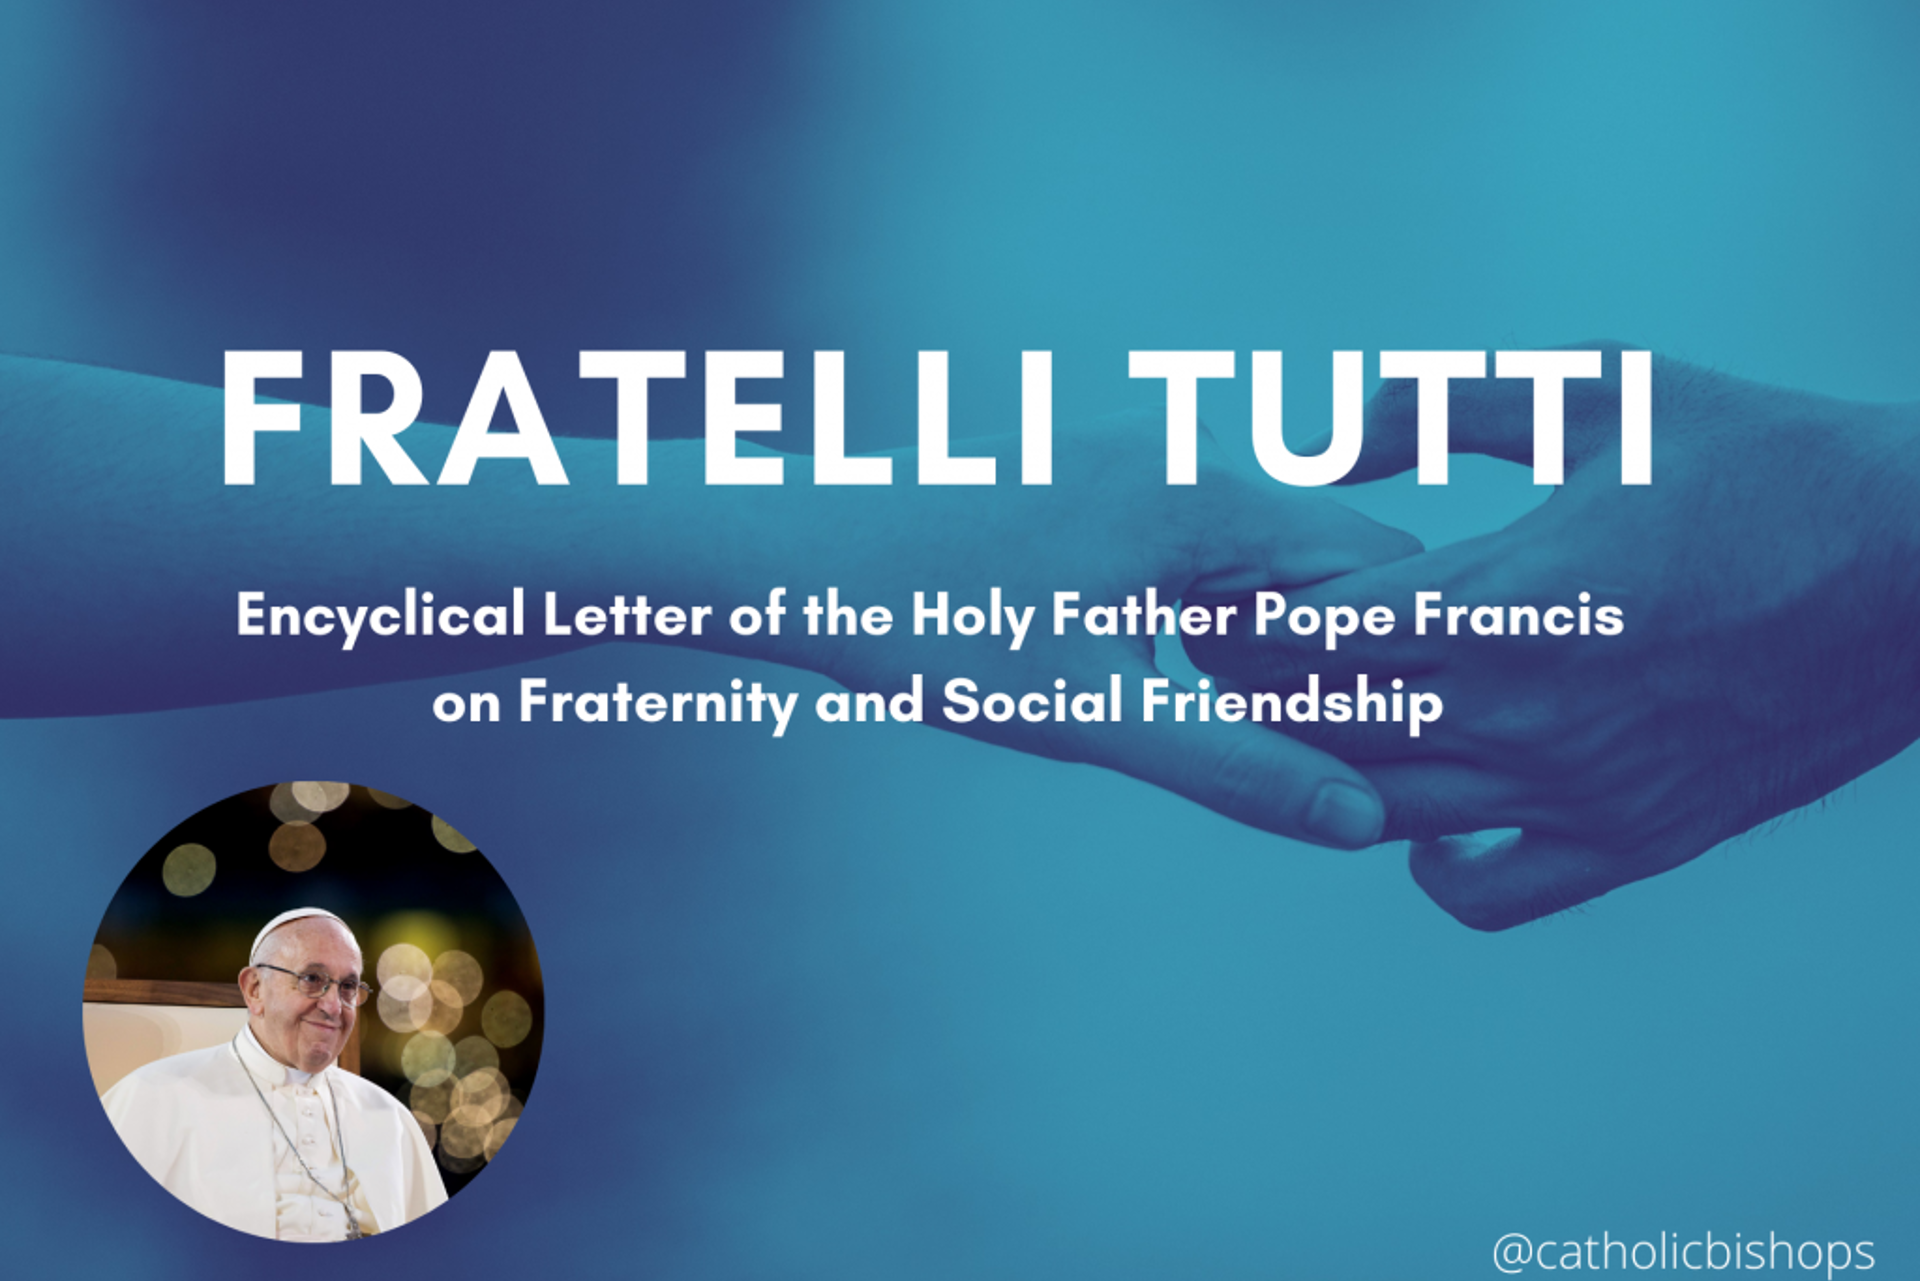 Introduction to 'Fratelli tutti'; encyclical from Pope Francis